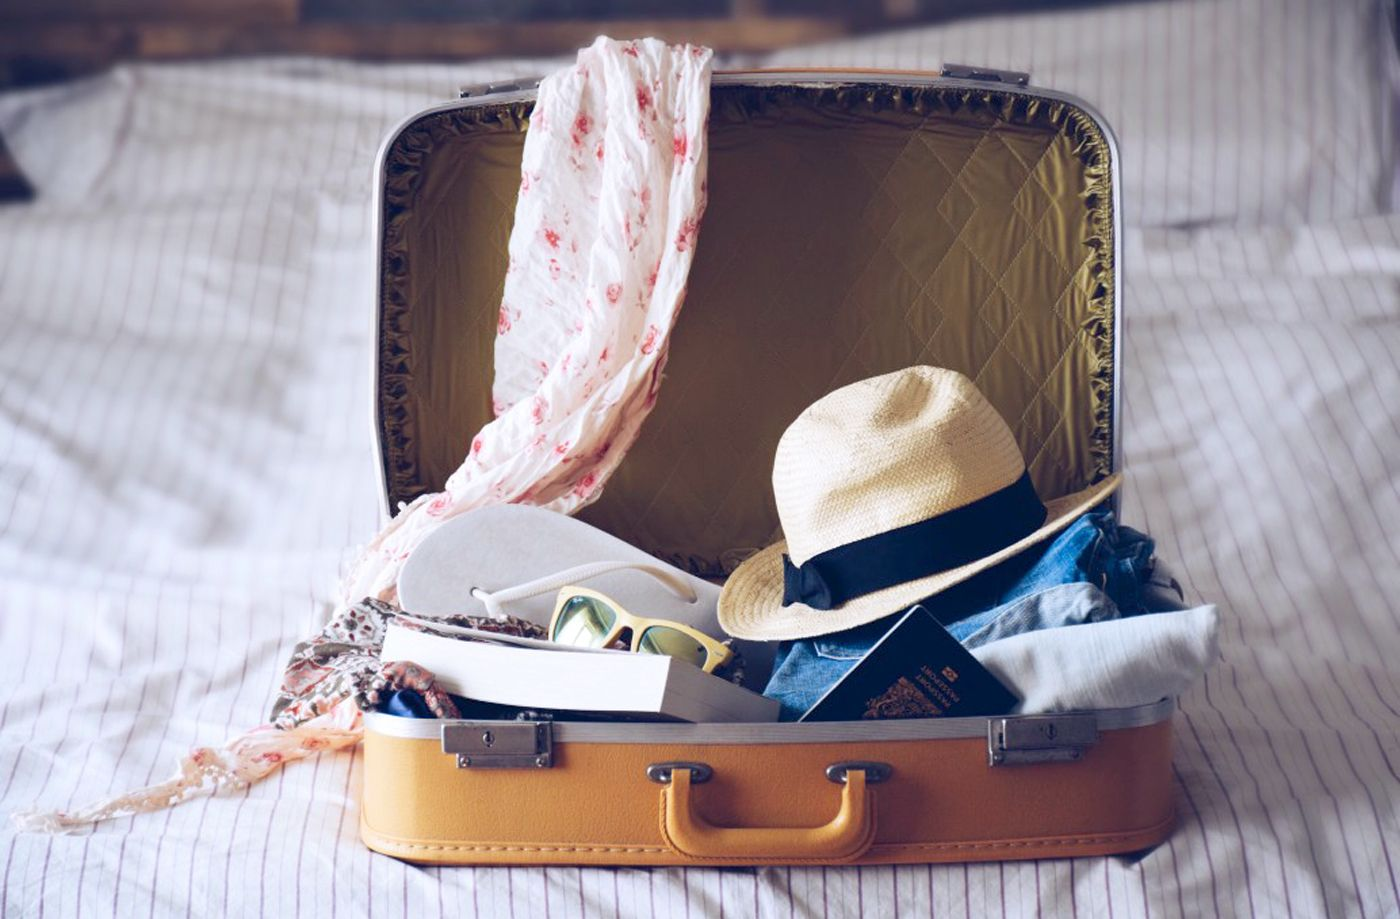 Thumbnail for Keep the dirty clothes in your suitcase smelling fresh with this genius hack